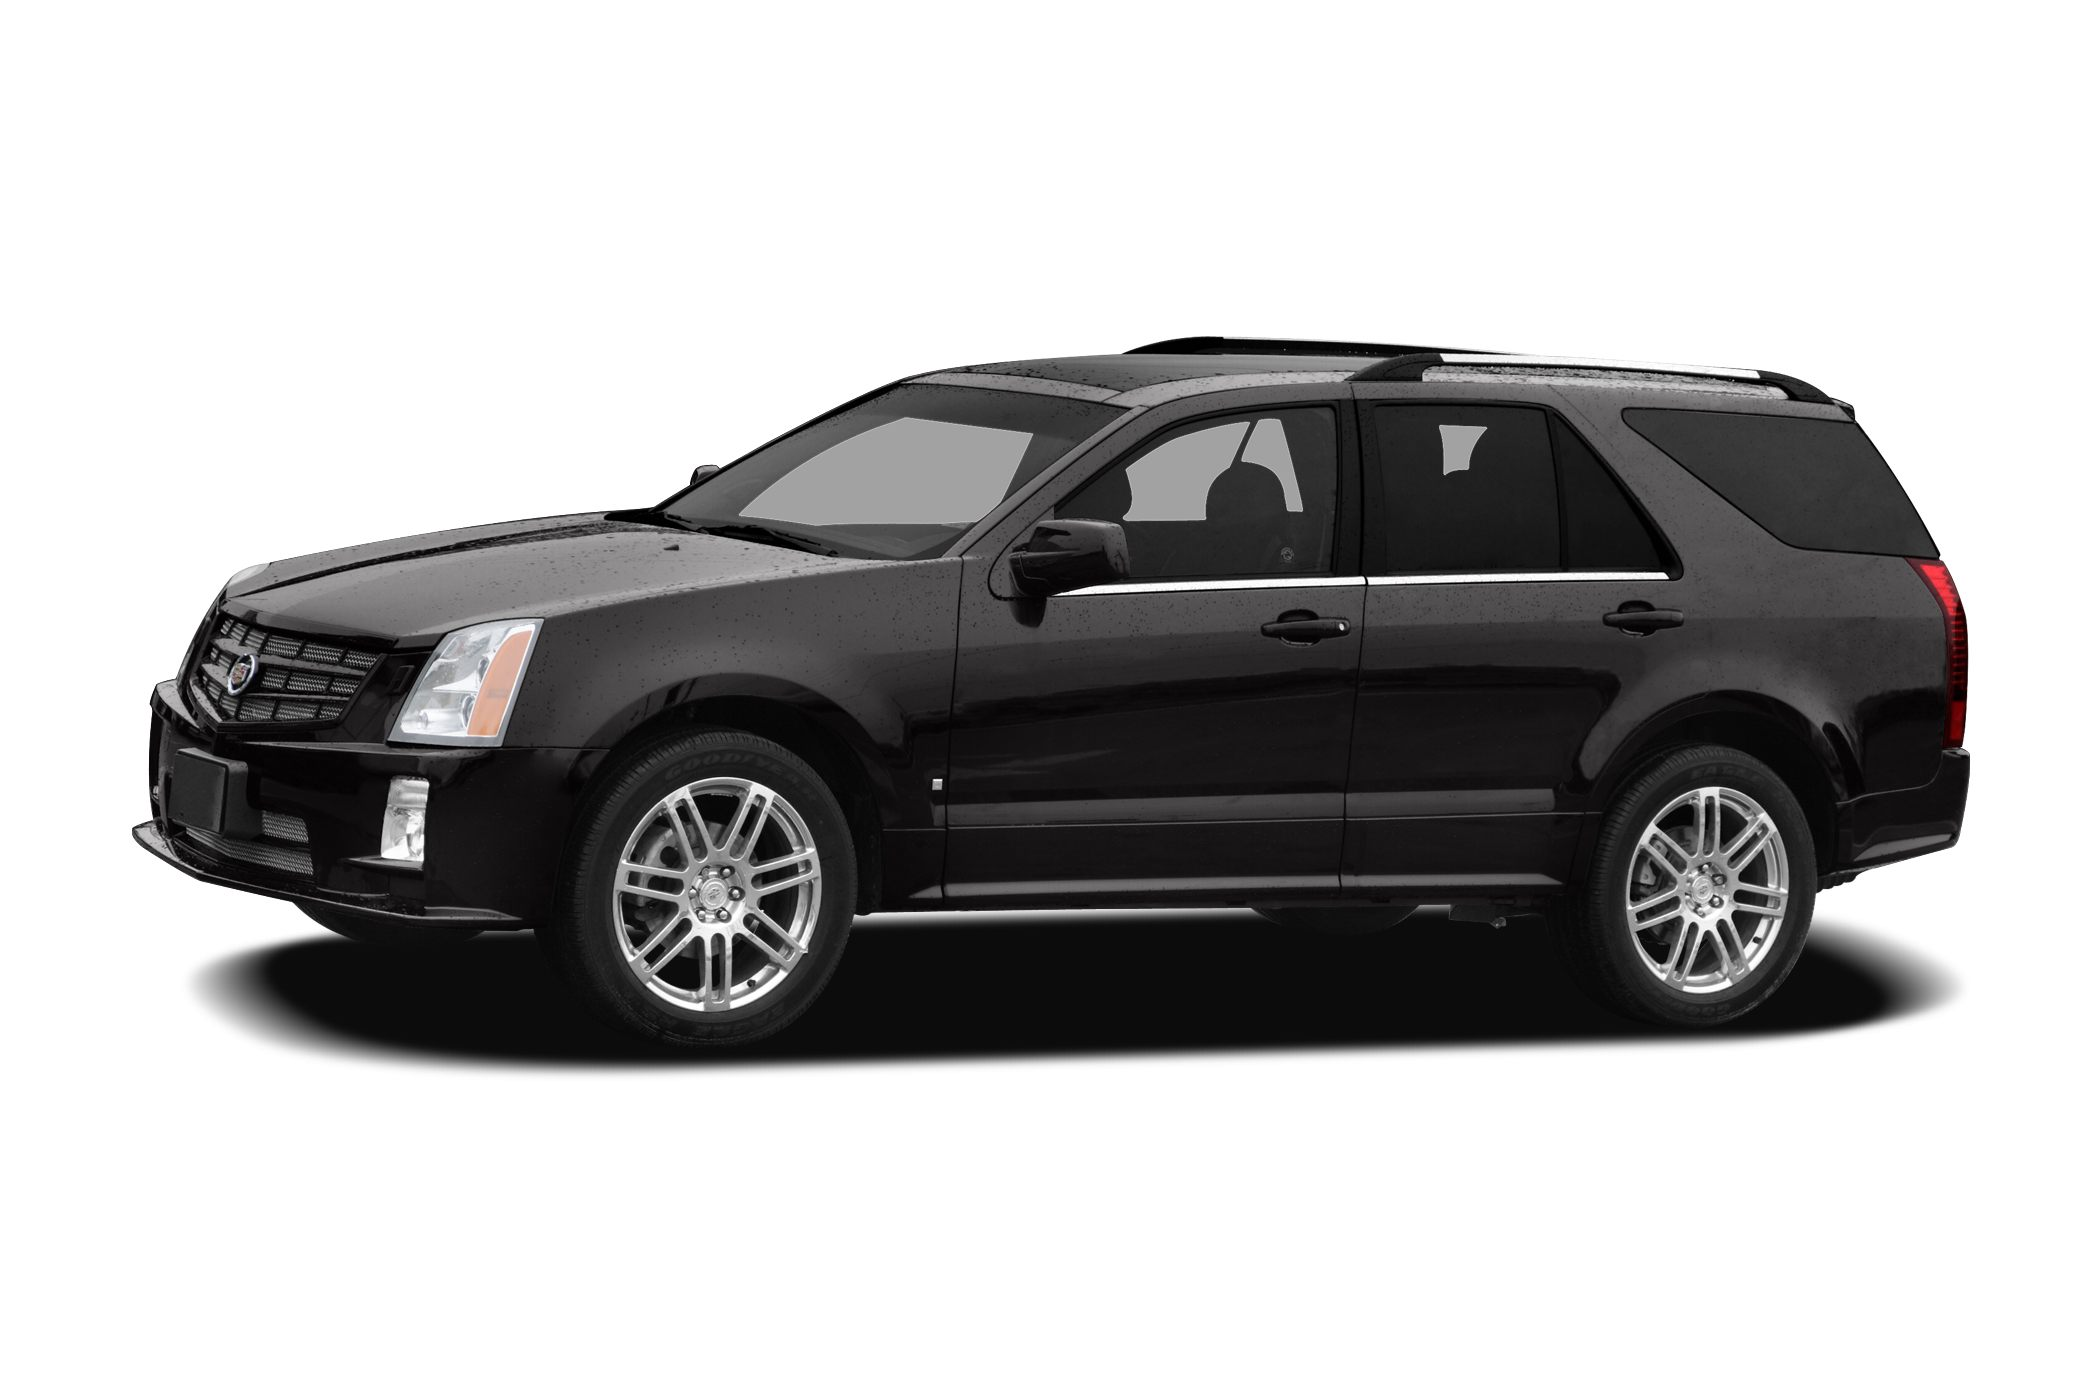 2007 Cadillac SRX V6 SUV for sale in Niagara Falls for $12,490 with 92,474 miles